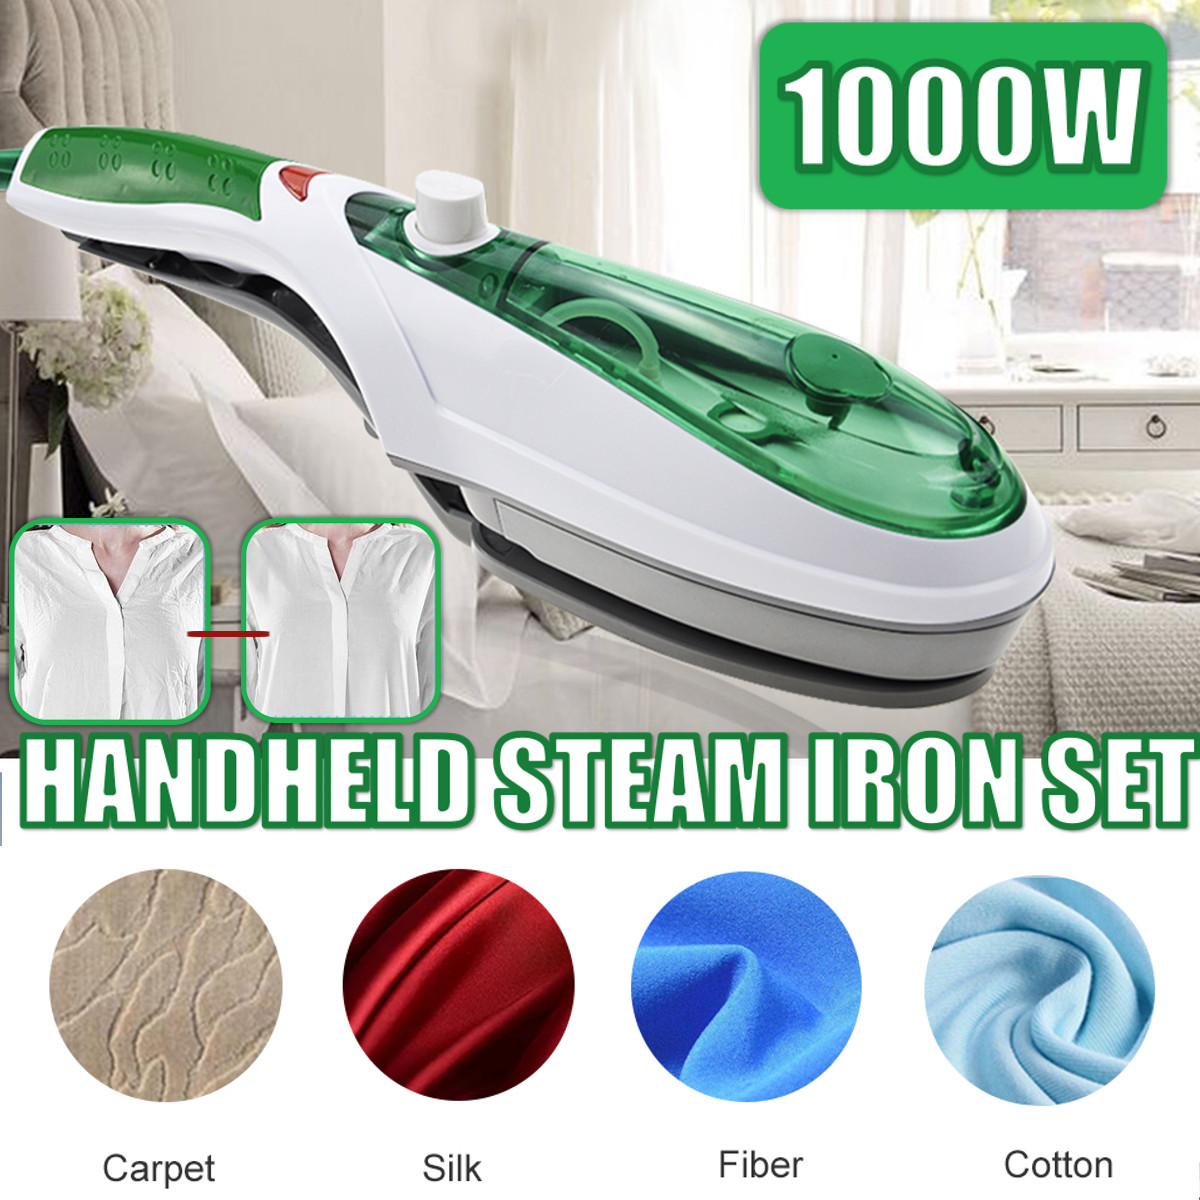 1000W Handheld Garment Steamer Brush Portable Steam Iron For Clothes Generator Ironing Steamer For Underwear Steamer Iron